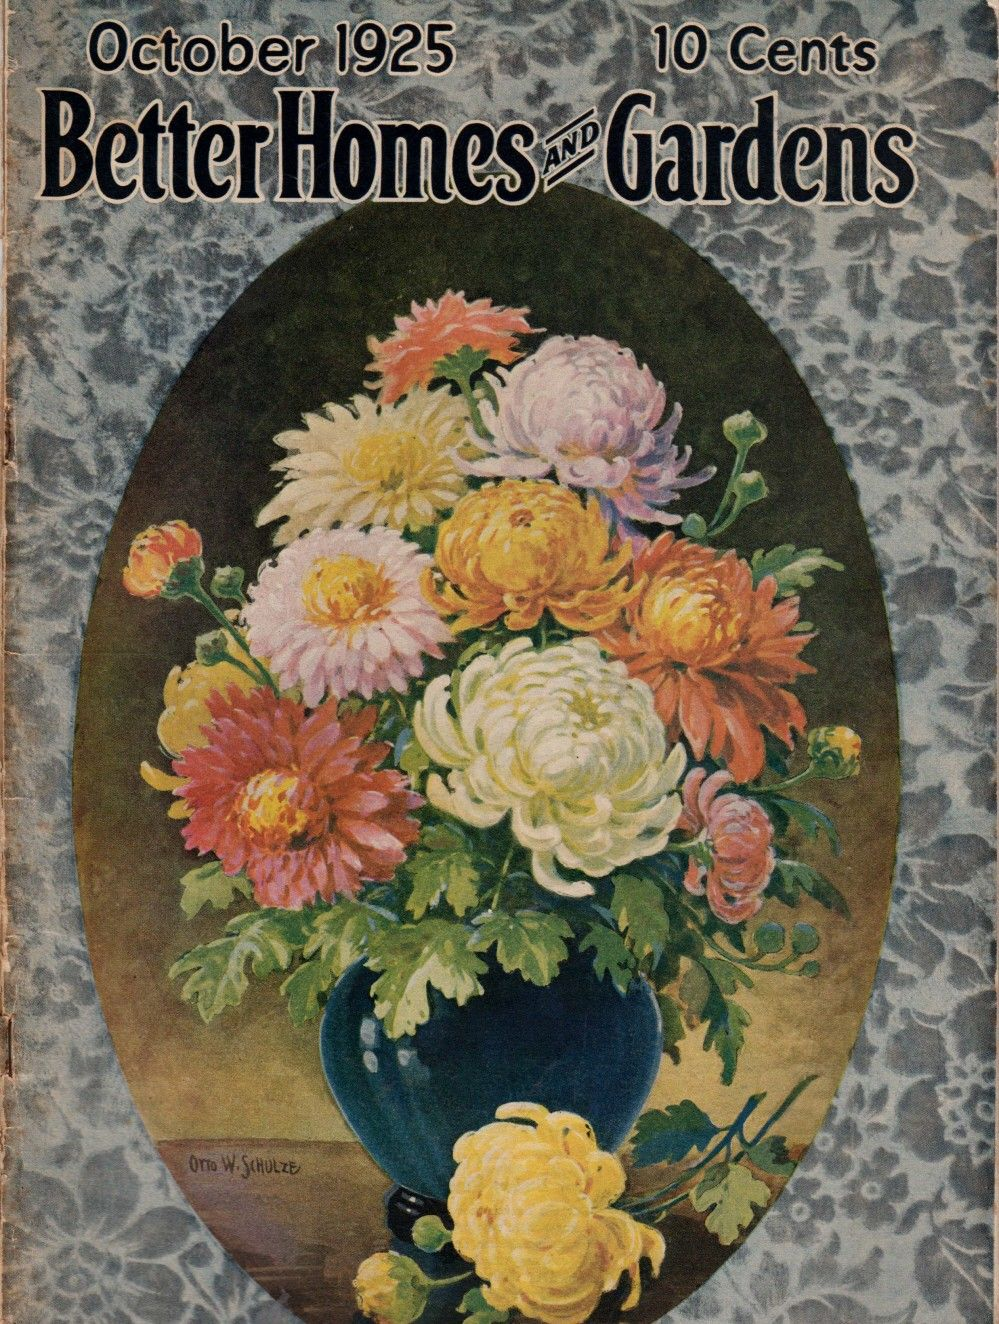 When Did Better Homes And Gardens Start